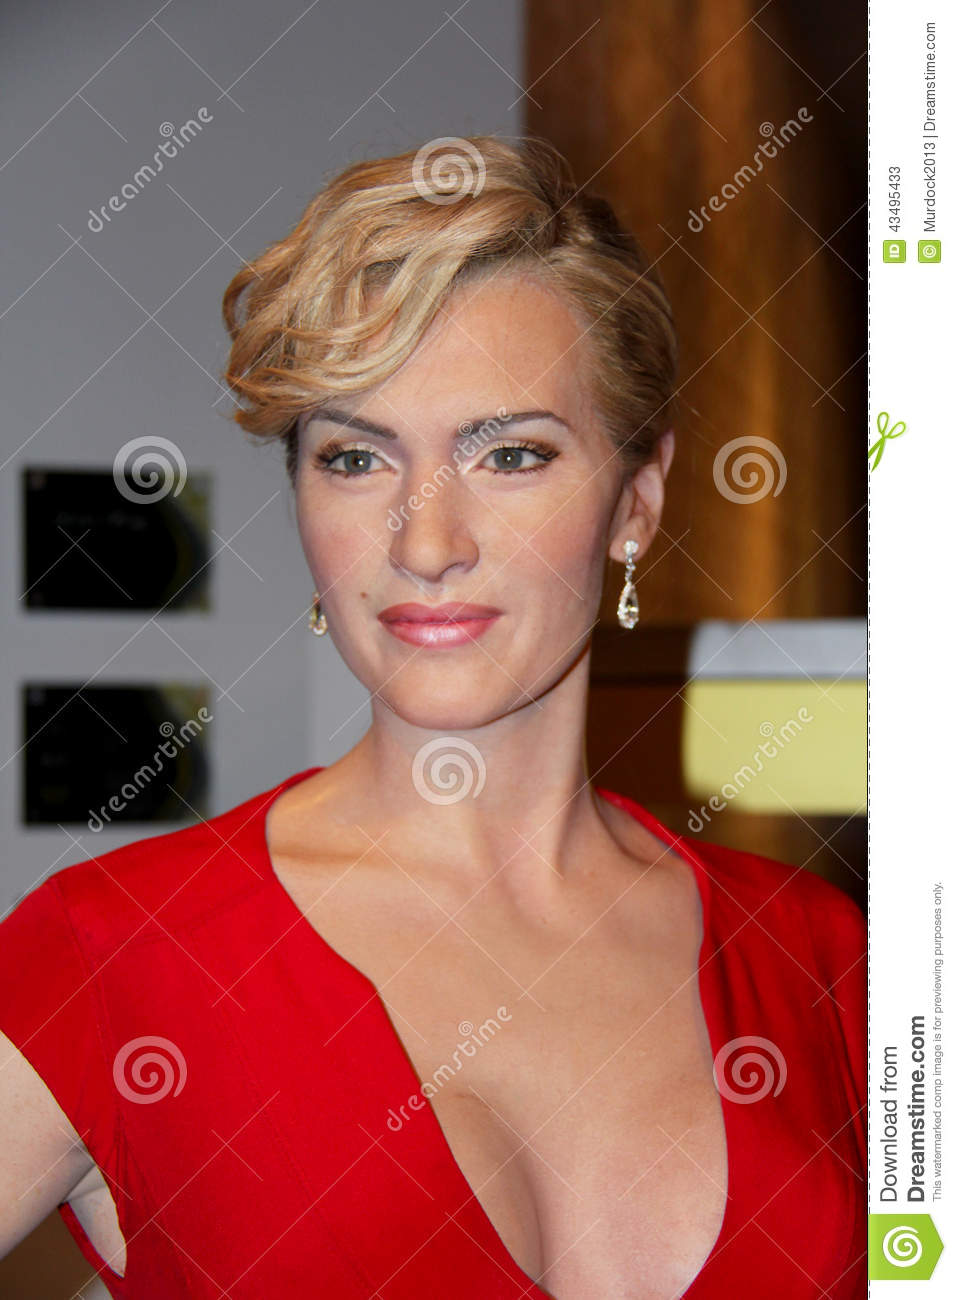 Kate Elizabeth Winslet, Editorial Stock Photo - kate-elizabeth-winslet-london-united-kingdom-july-madame-tussauds-london-waxwork-statue-created-madam-tussauds-madam-43495433